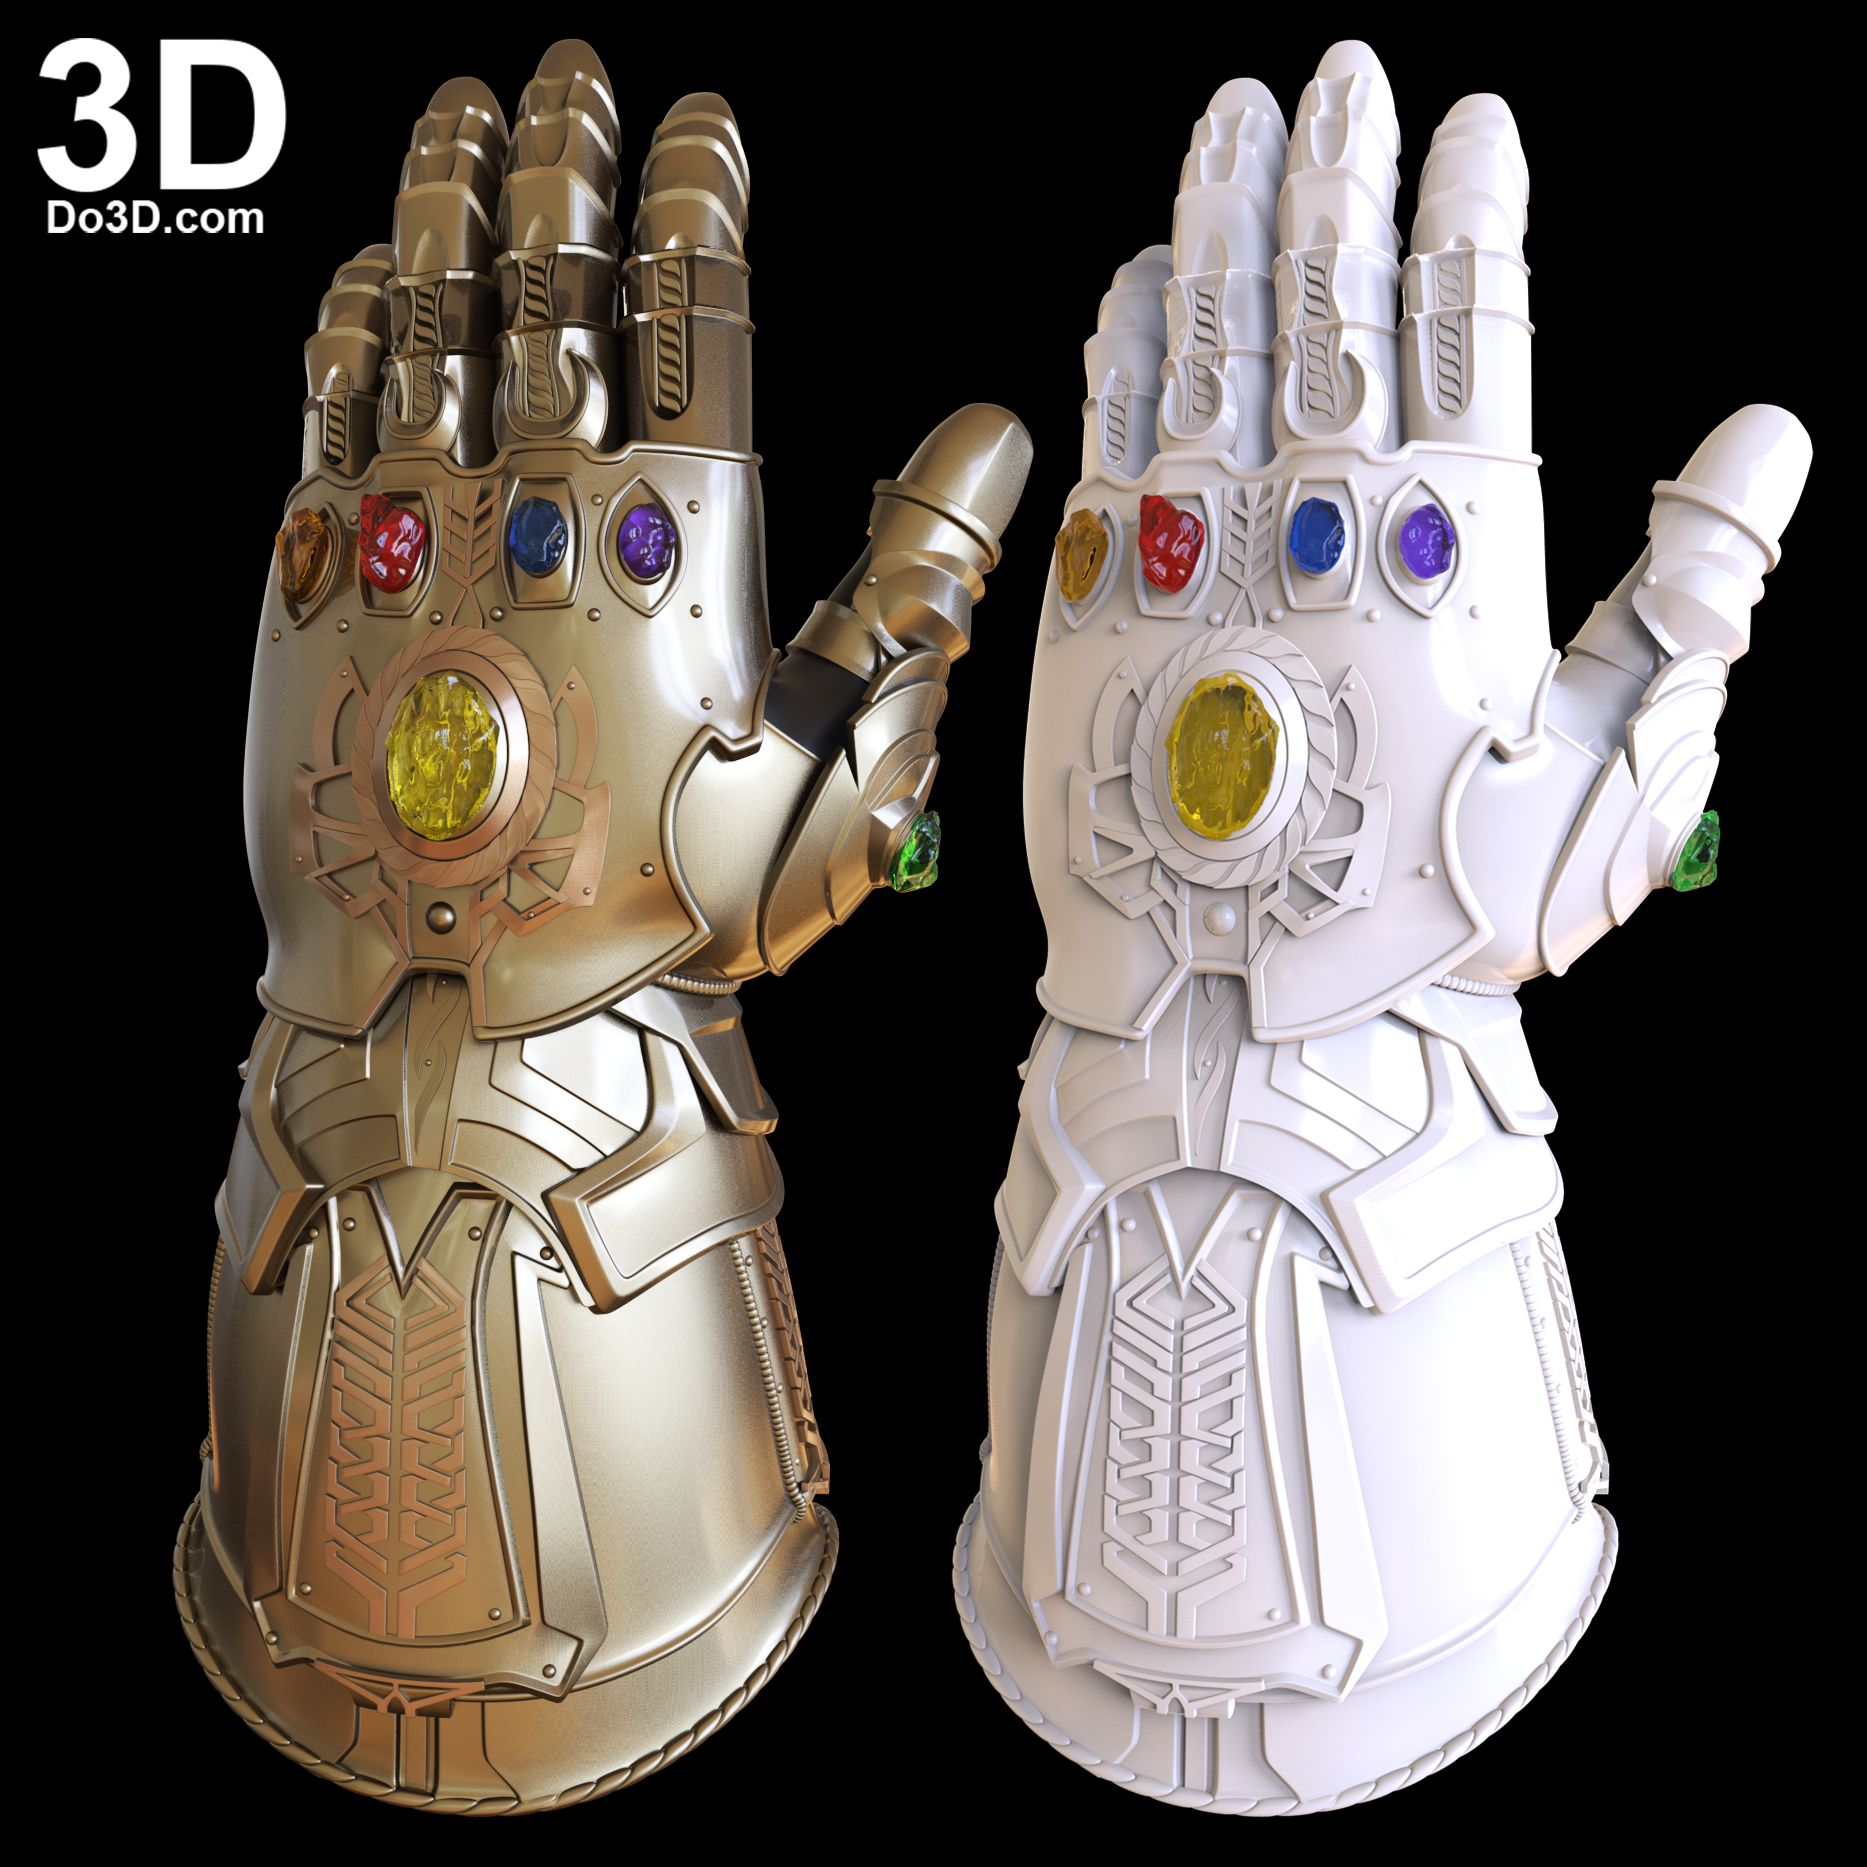 3d printable model thanos infinity gauntlet forearm glove d23